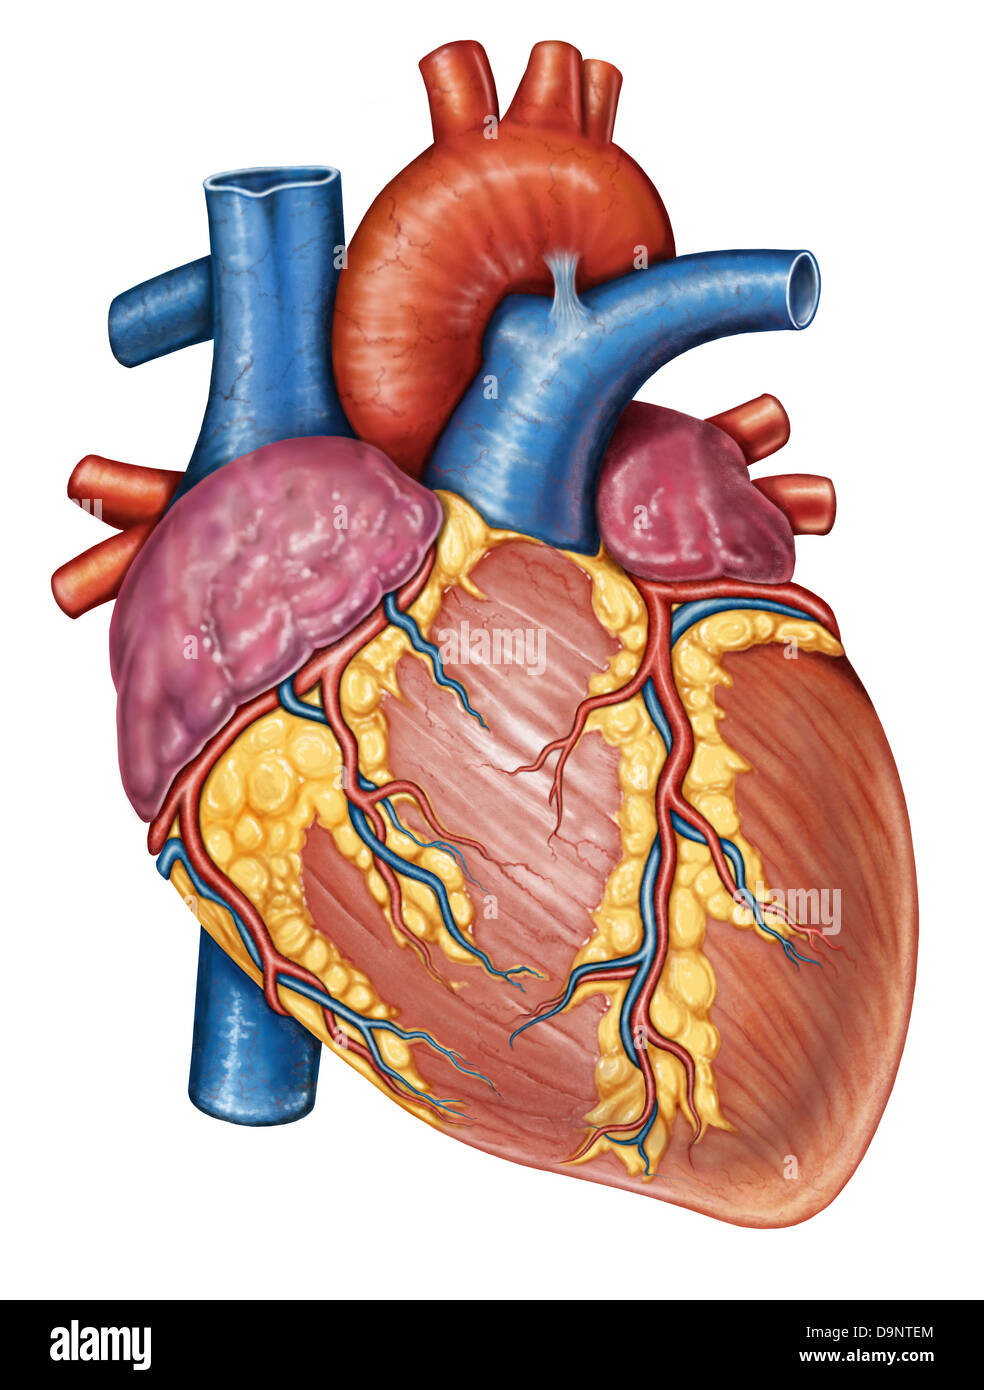 Gross anatomy of the human heart. - Stock Image